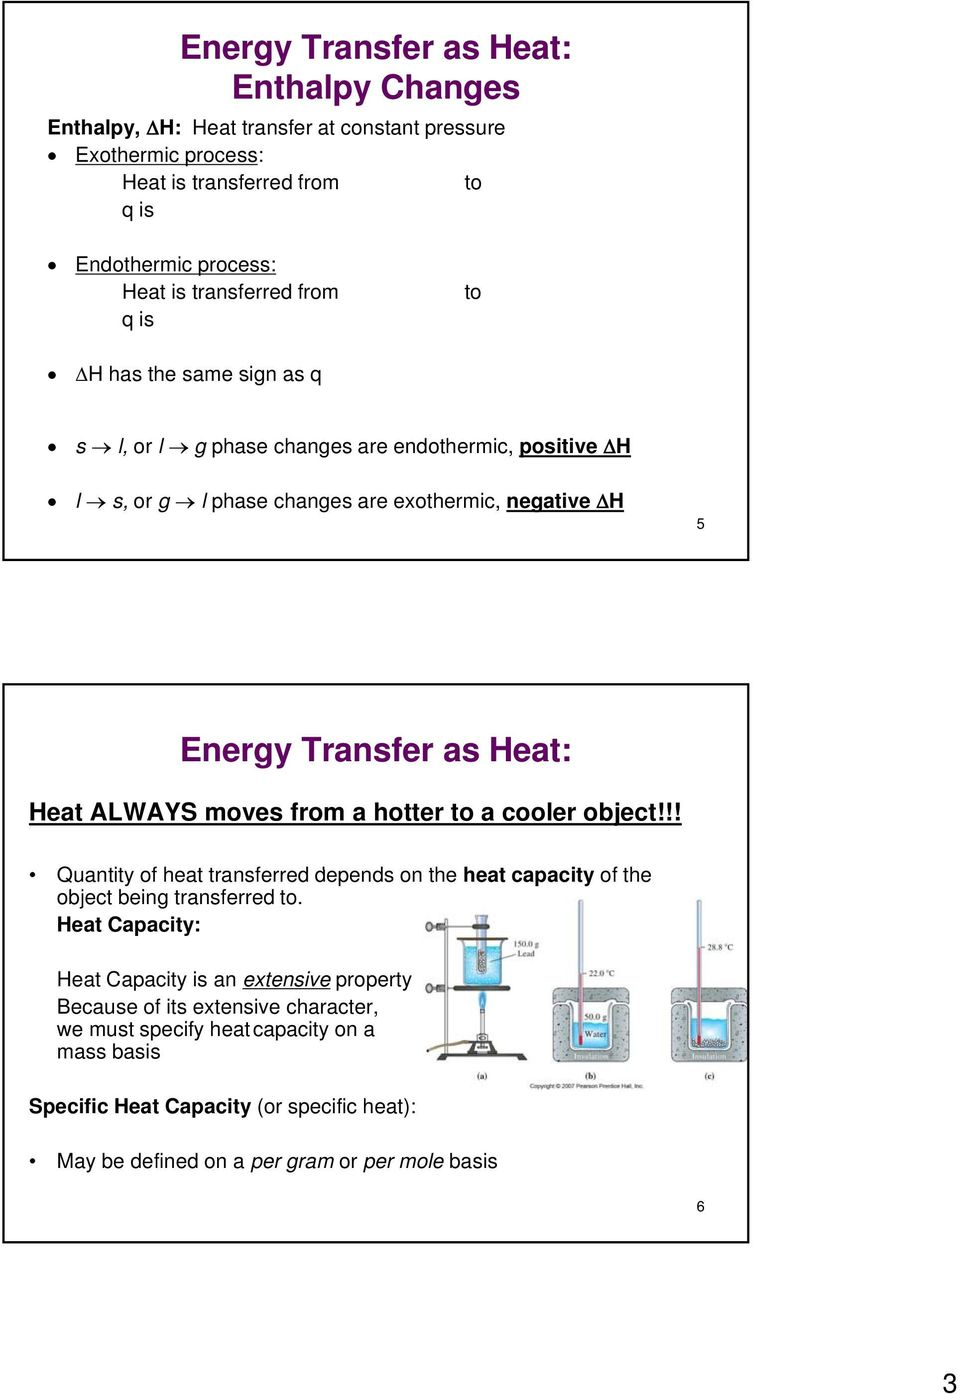 ALWAYS moves from a hotter to a cooler object!!! Quantity of fheat ttransferred ddepends d on the heat capacity of fthe object being transferred to.